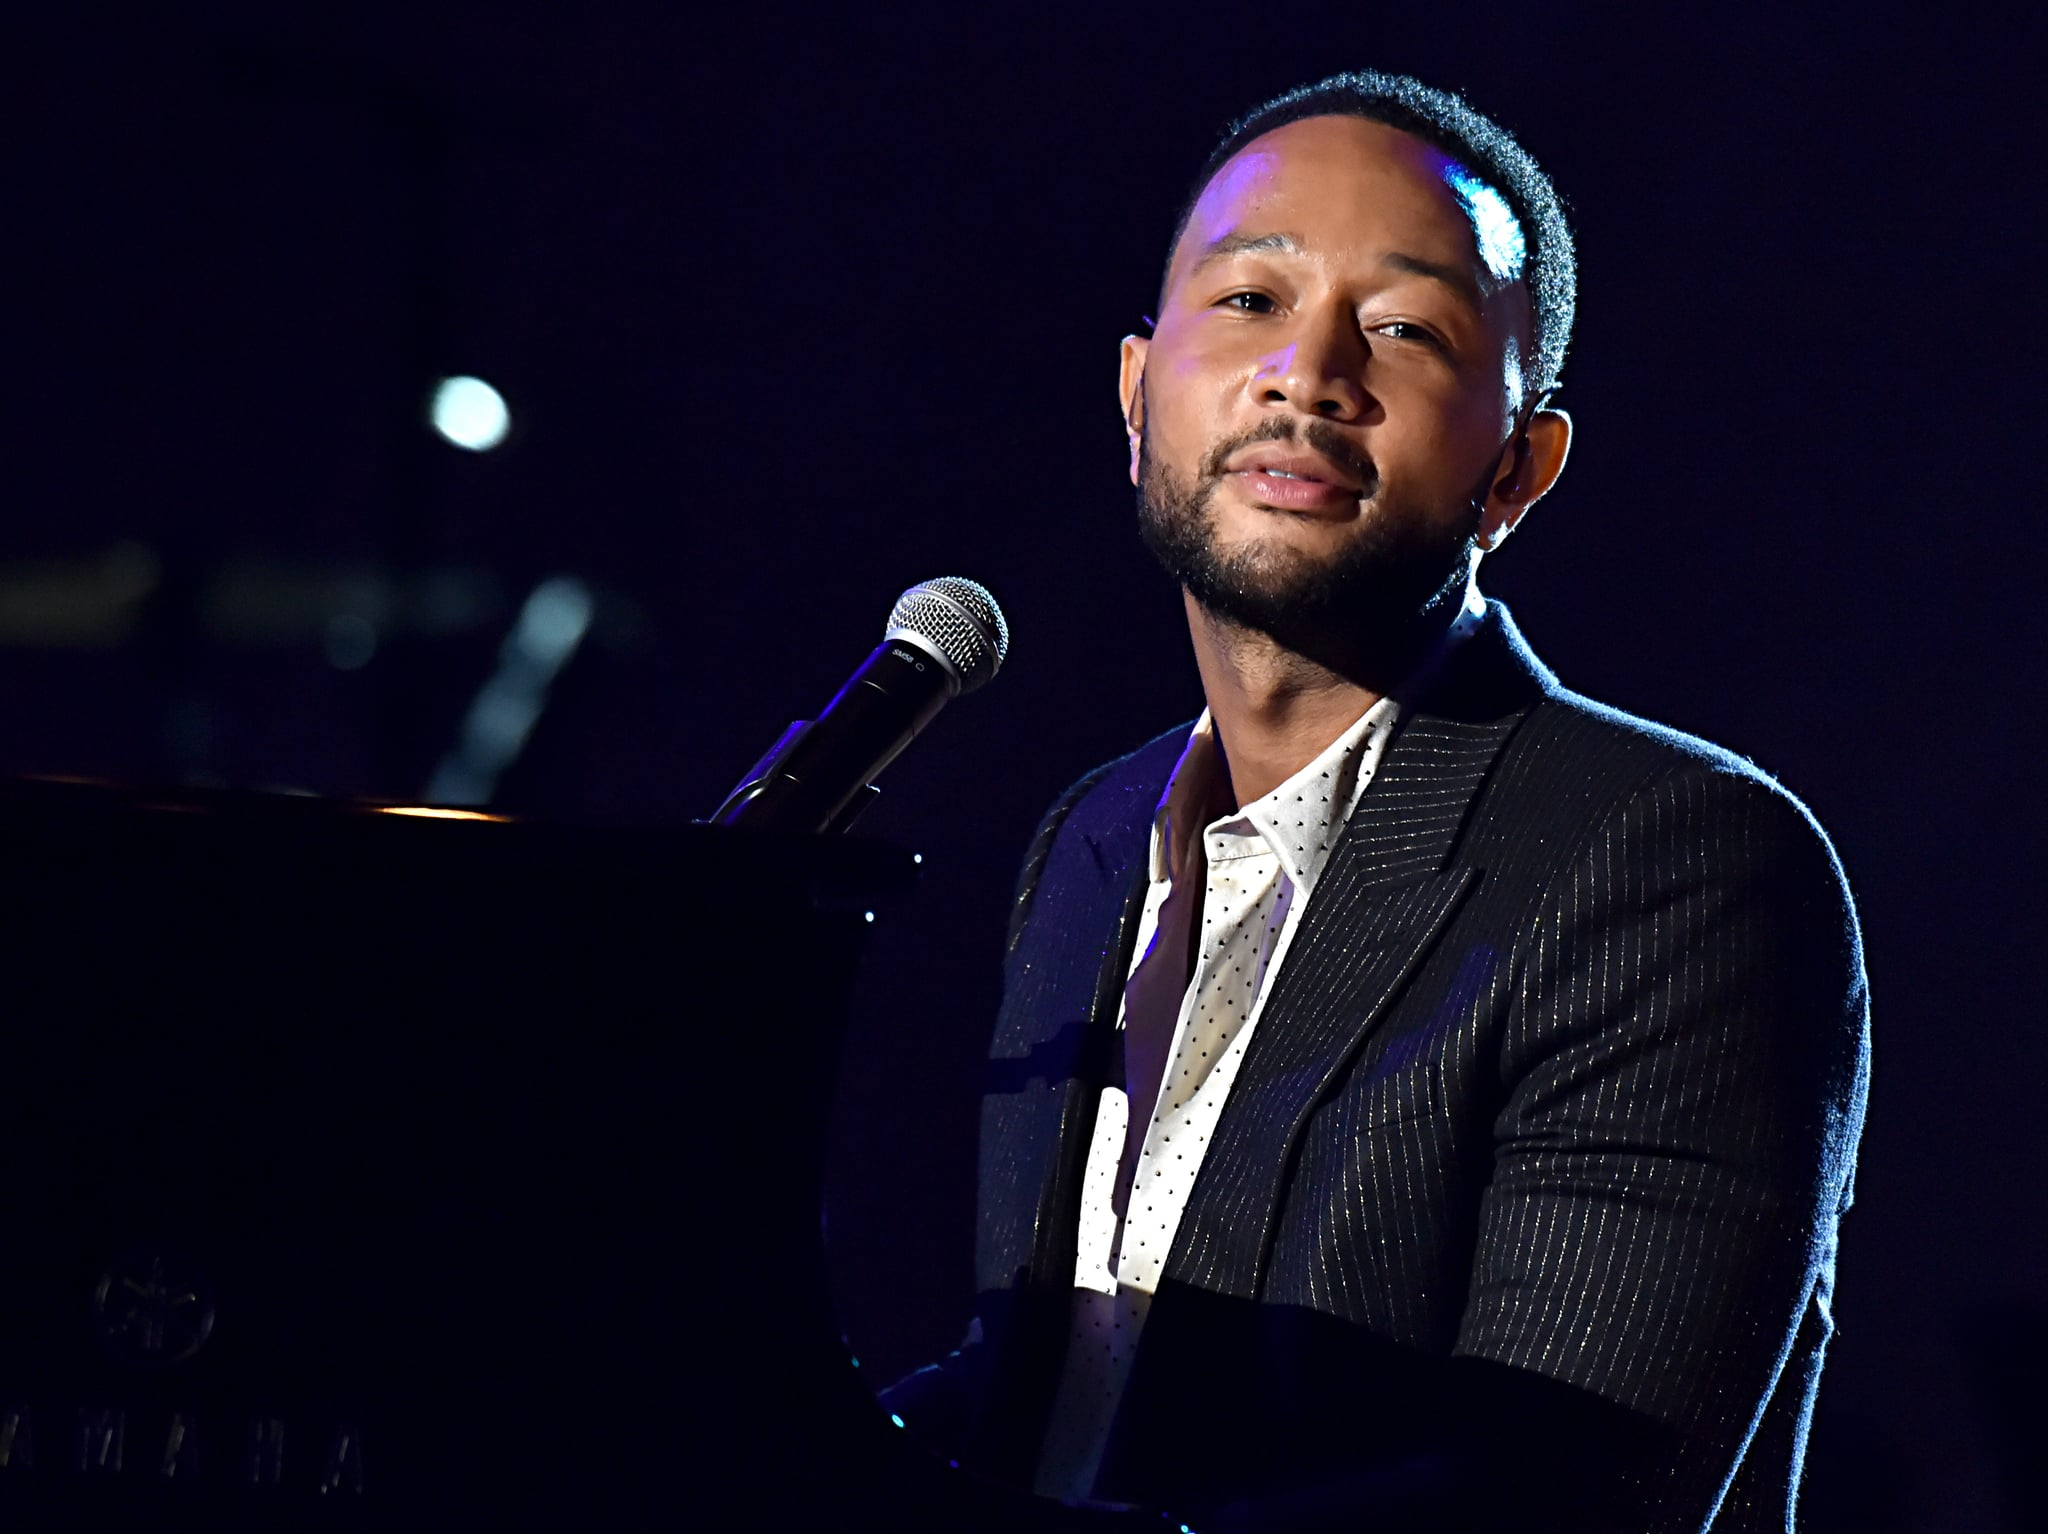 LOS ANGELES, CALIFORNIA - JANUARY 24: John Legend performs onstage during MusiCares Person of the Year honoring Aerosmith at West Hall at Los Angeles Convention Center on January 24, 2020 in Los Angeles, California. (Photo by Lester Cohen/Getty Images for The Recording Academy )